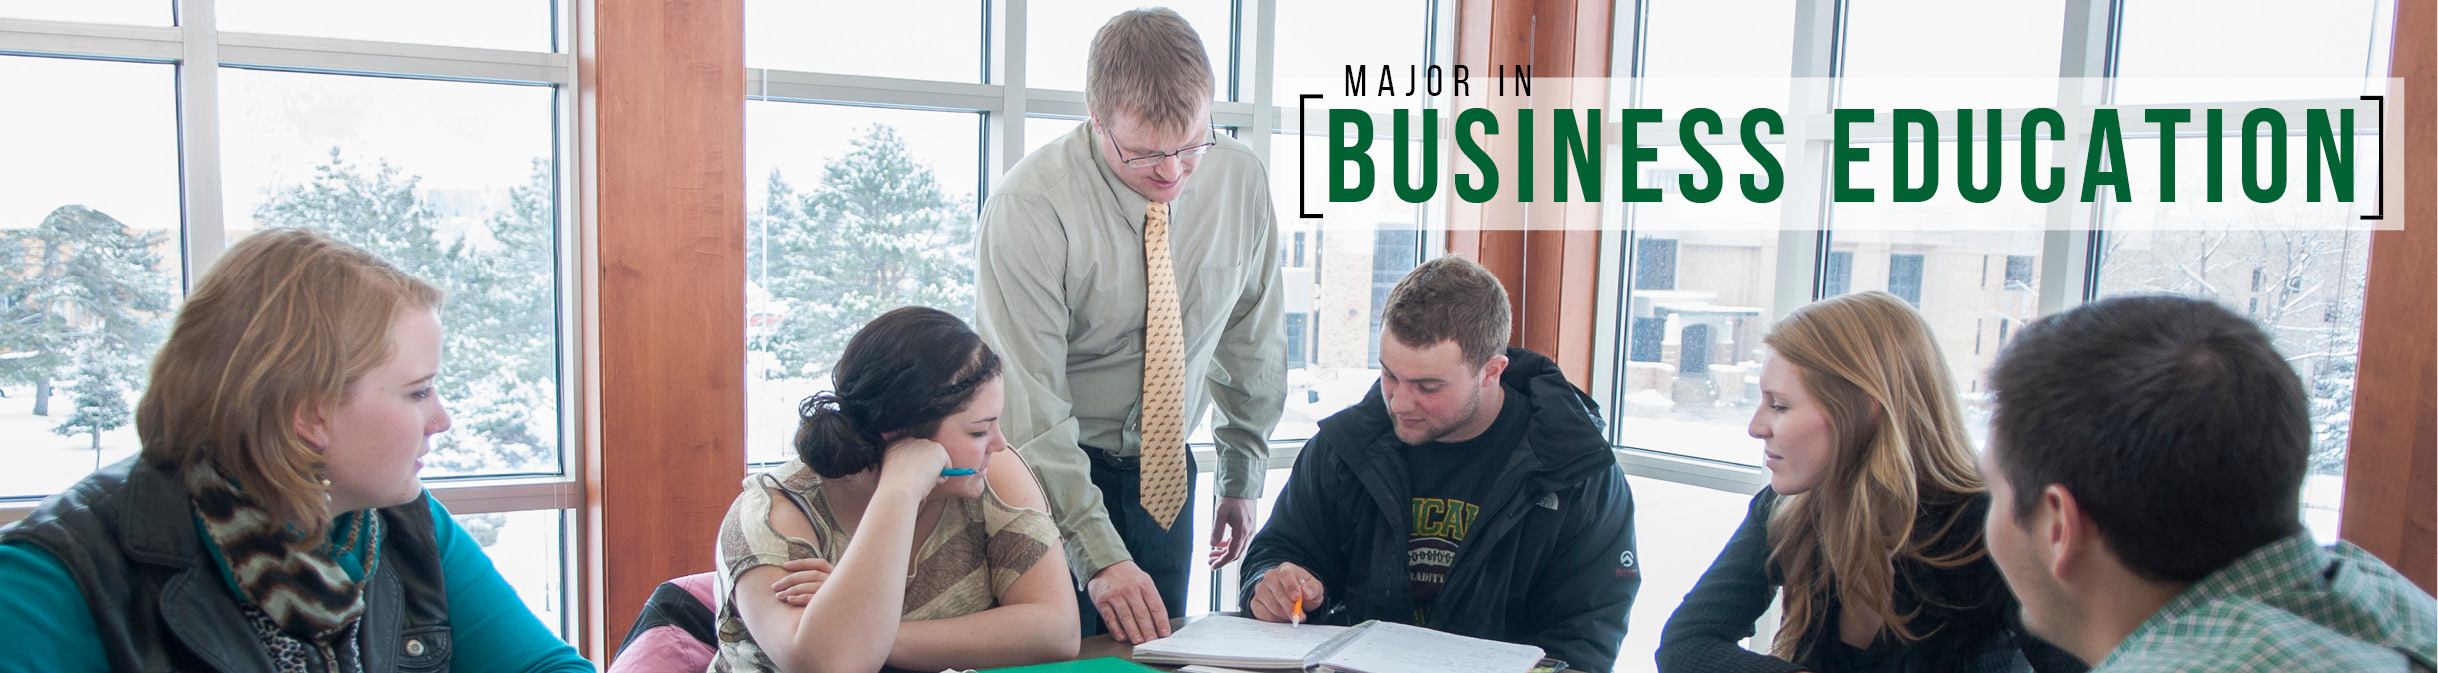 Business_Education_Banner